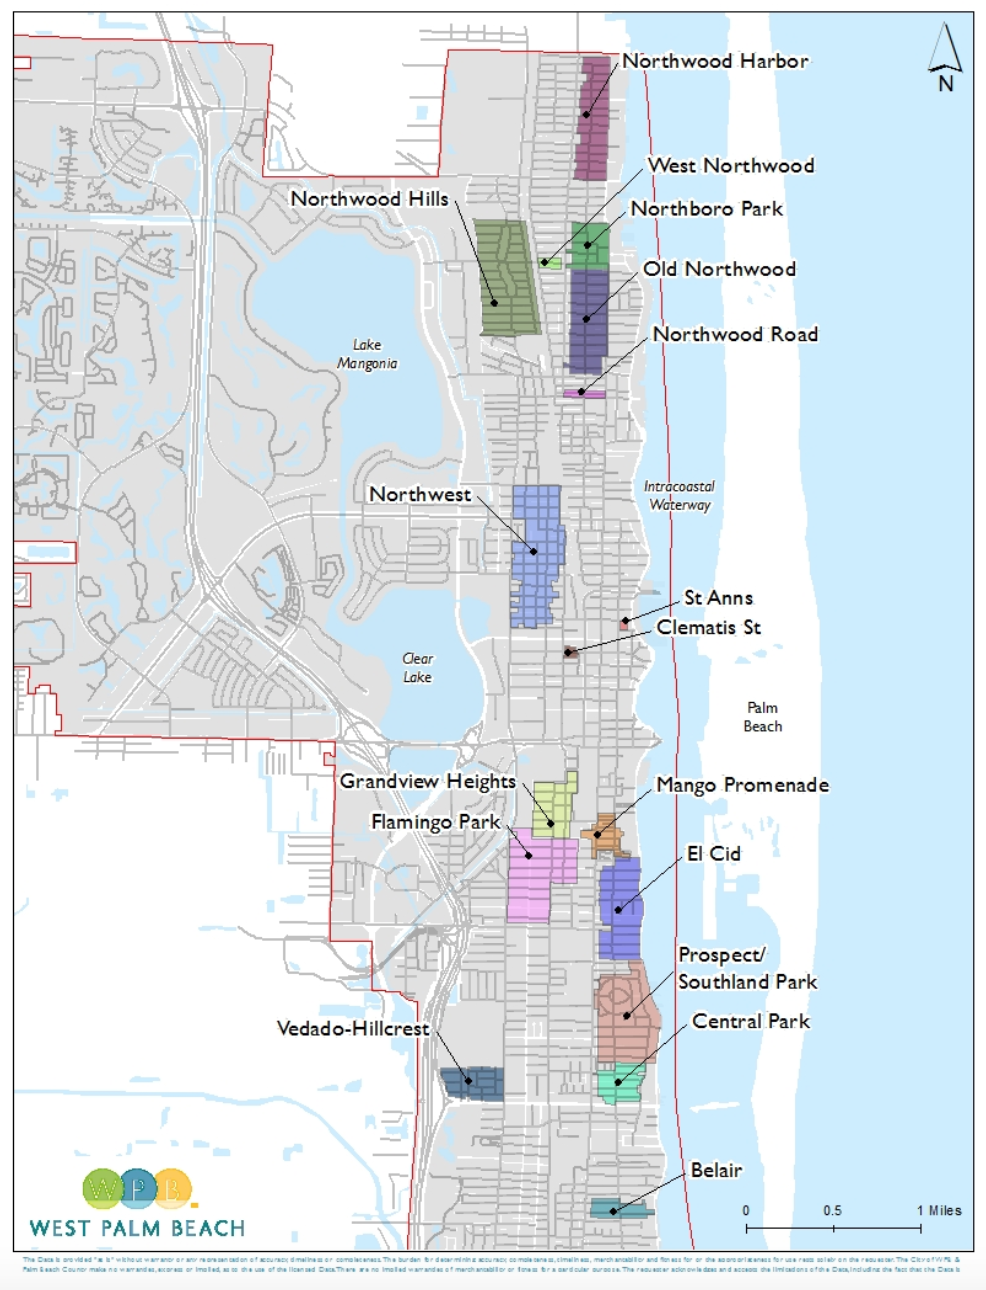 west palm beach commercial property for sale real estate development